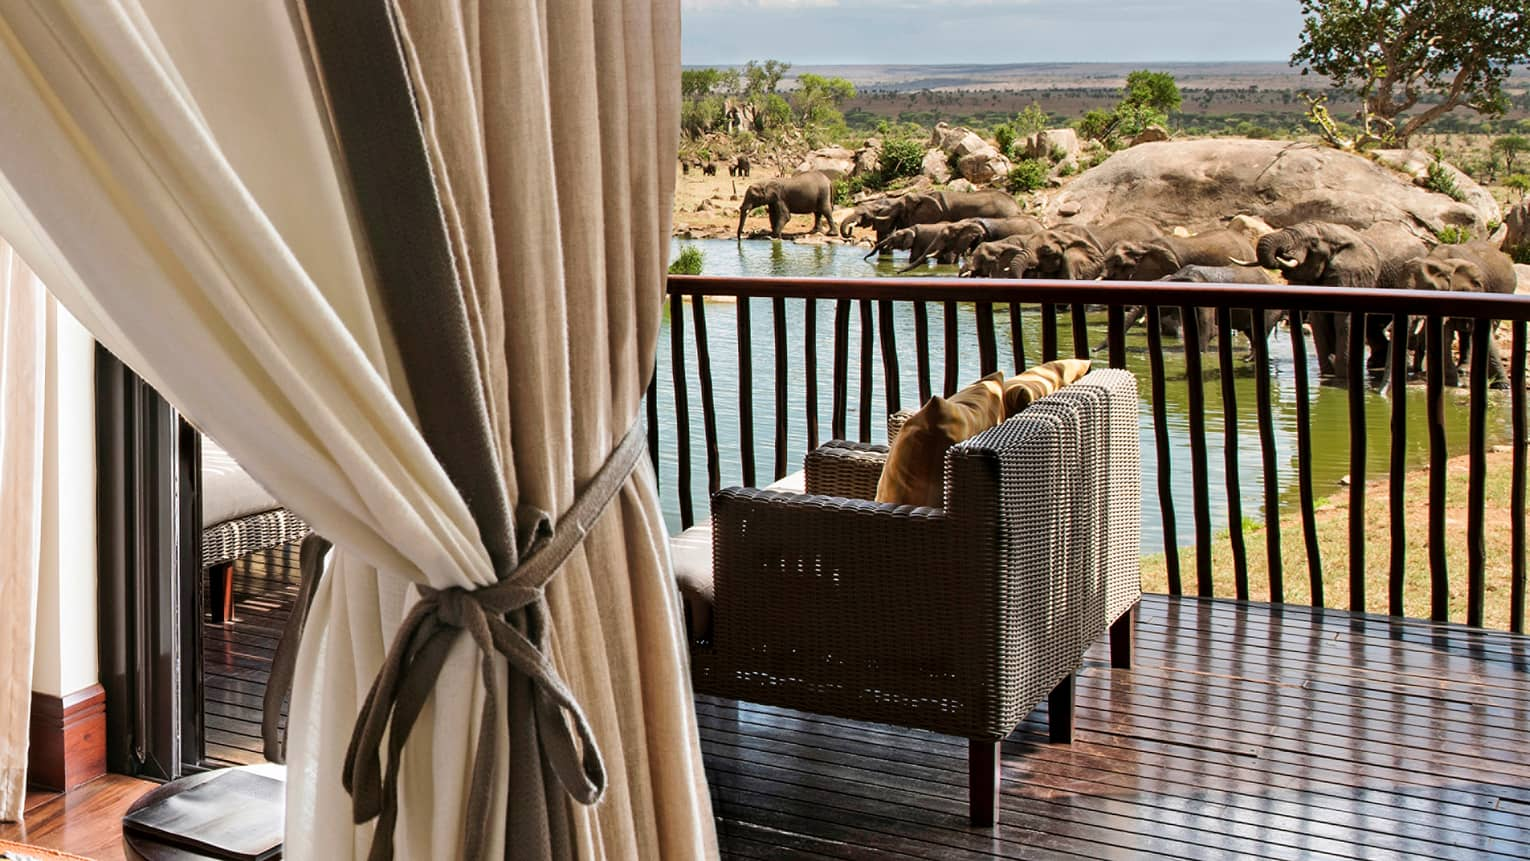 Savannah Room tied curtains in front of wicker loveseat on patio by elephants, waterhole